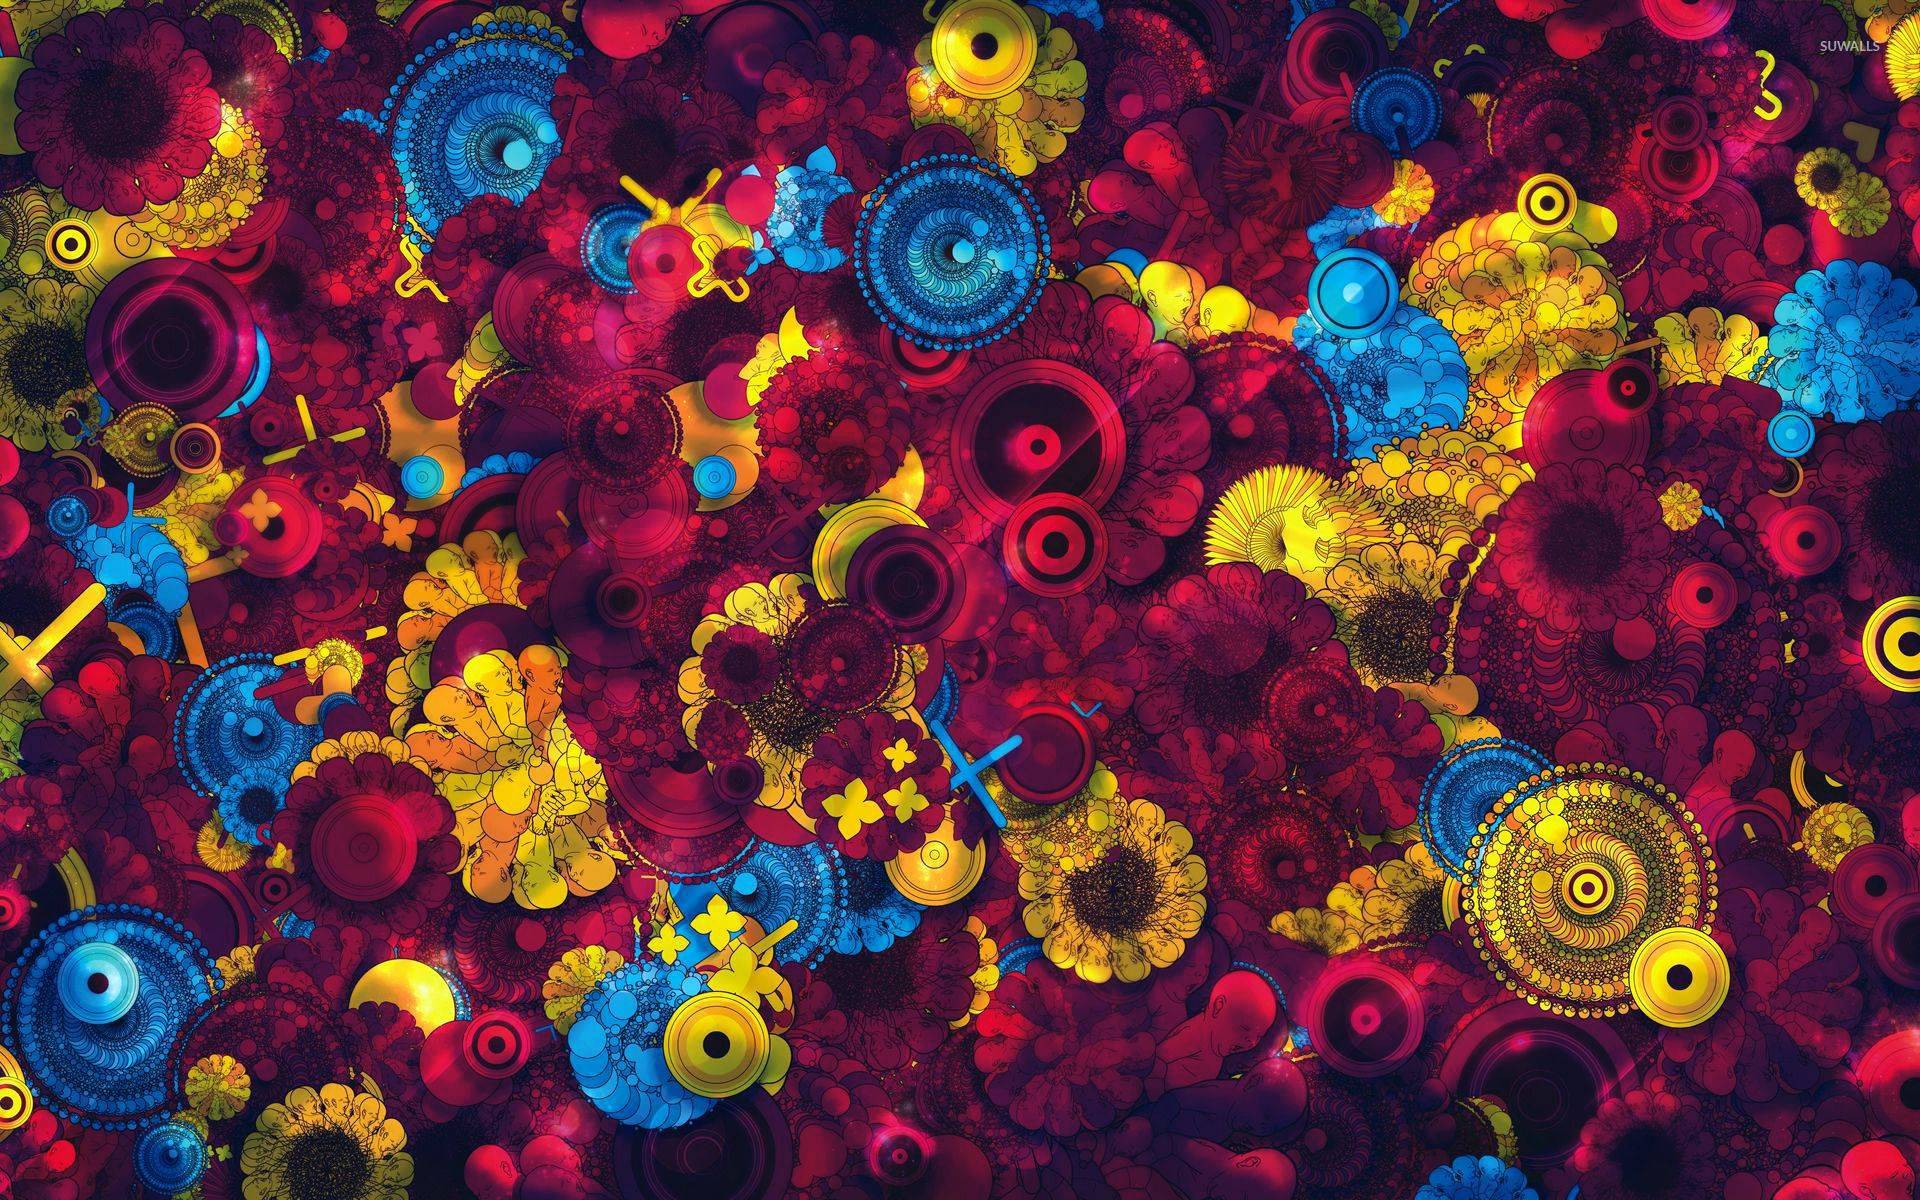 1920x1200 Abstract 4k background HD image spirograph circles and flowers 14658 ...